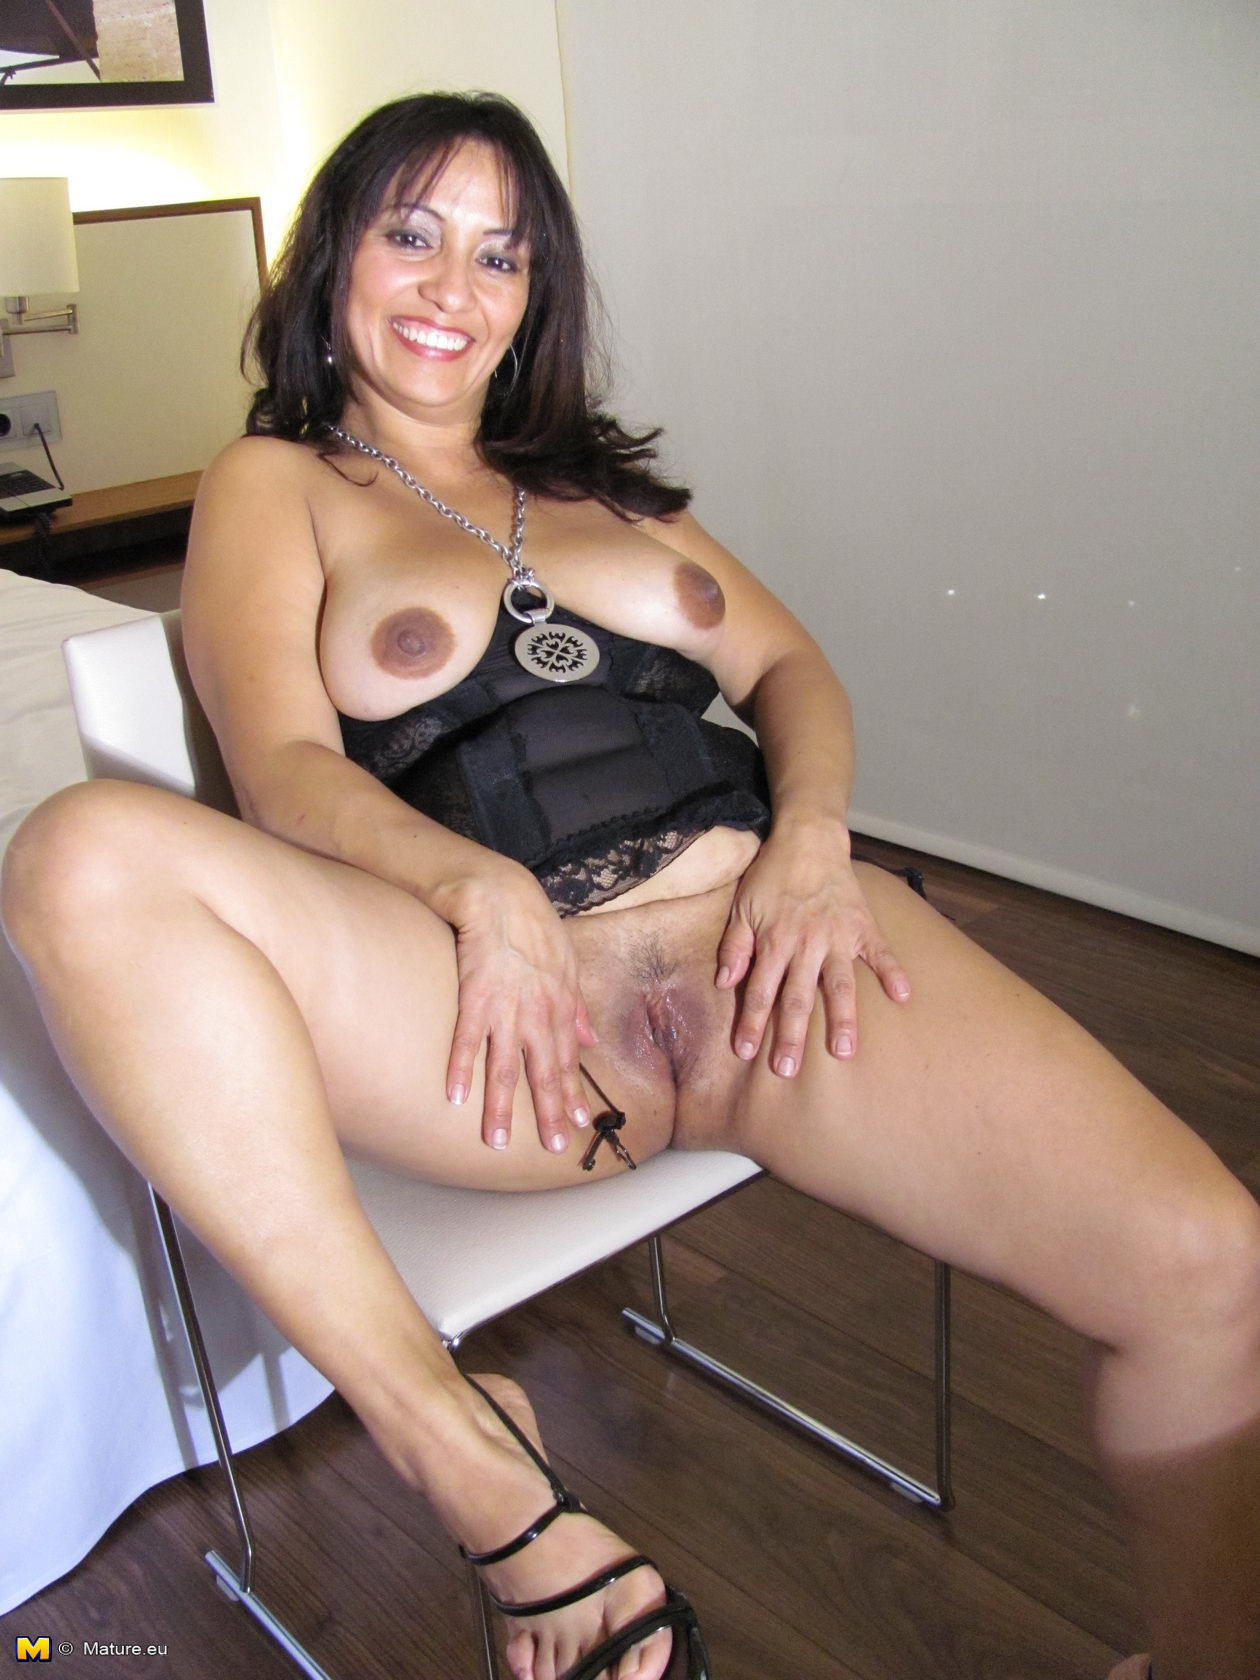 Latina mature nude women